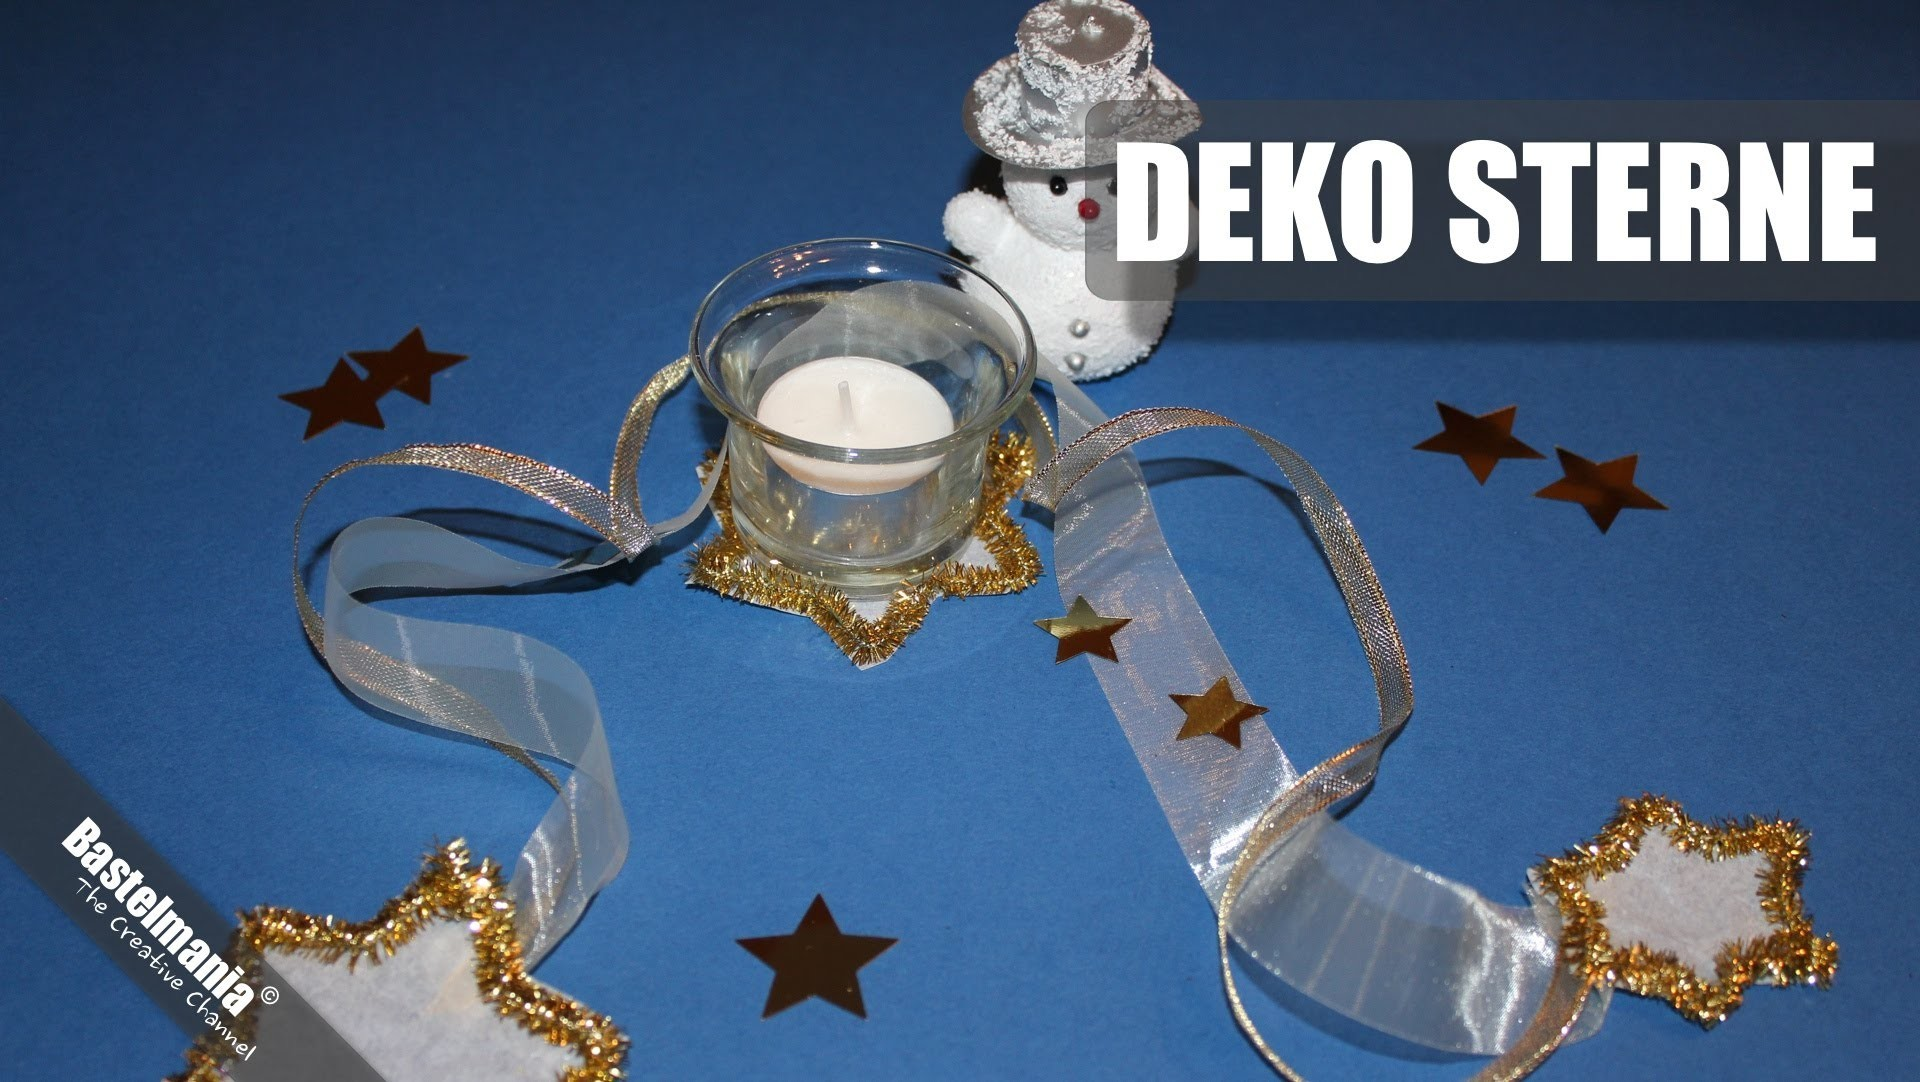 Deko Sterne. Decorative Star. Weihnachtsdeko. Christmas Decorations